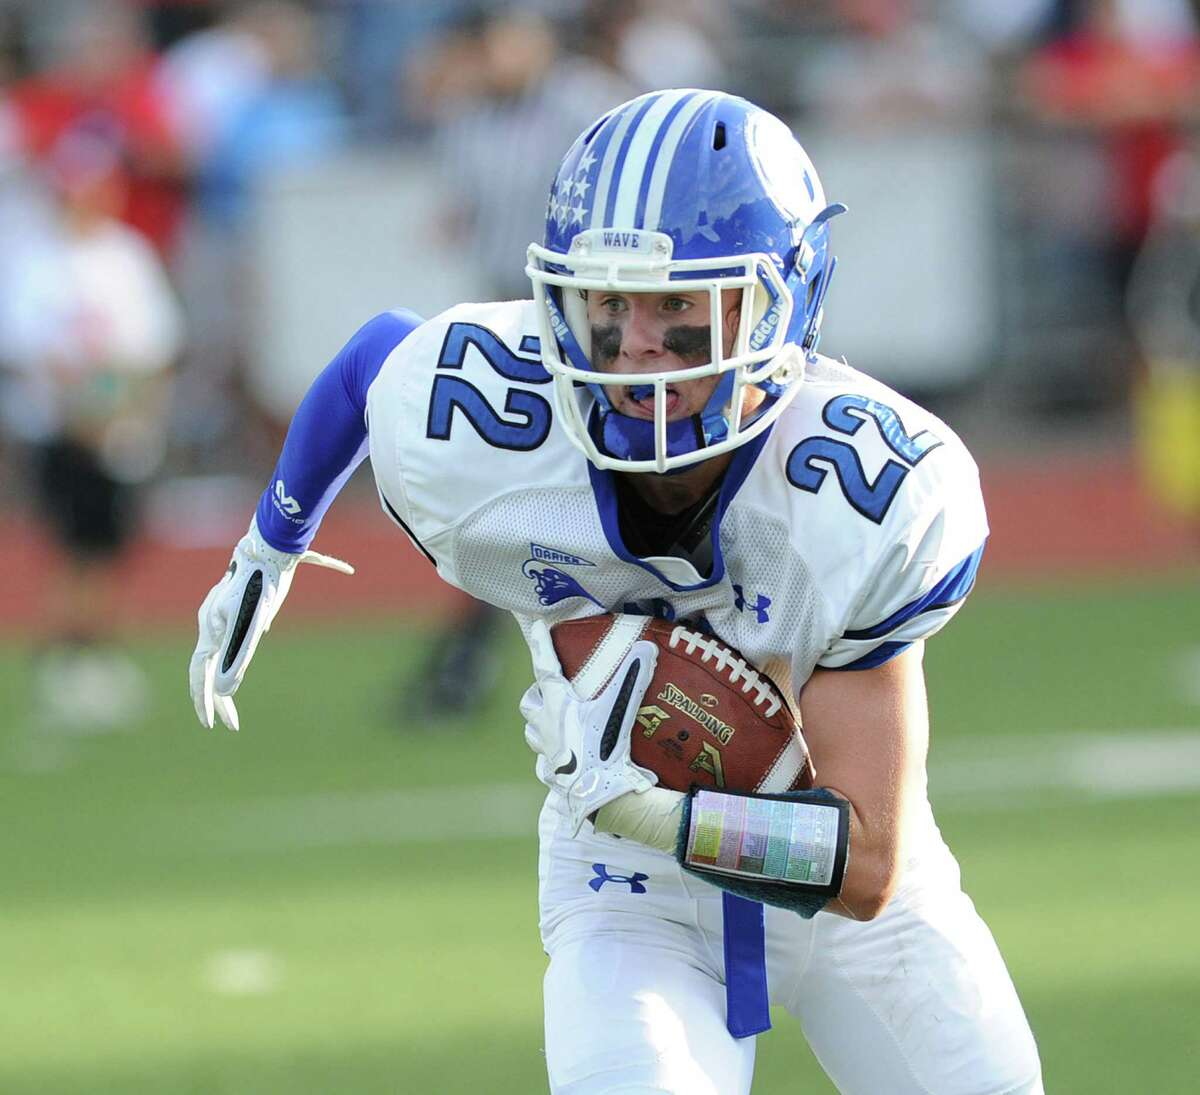 Hudson Hamill is one of the weapons that Darien quarterback Timmy Graham has at his disposal.